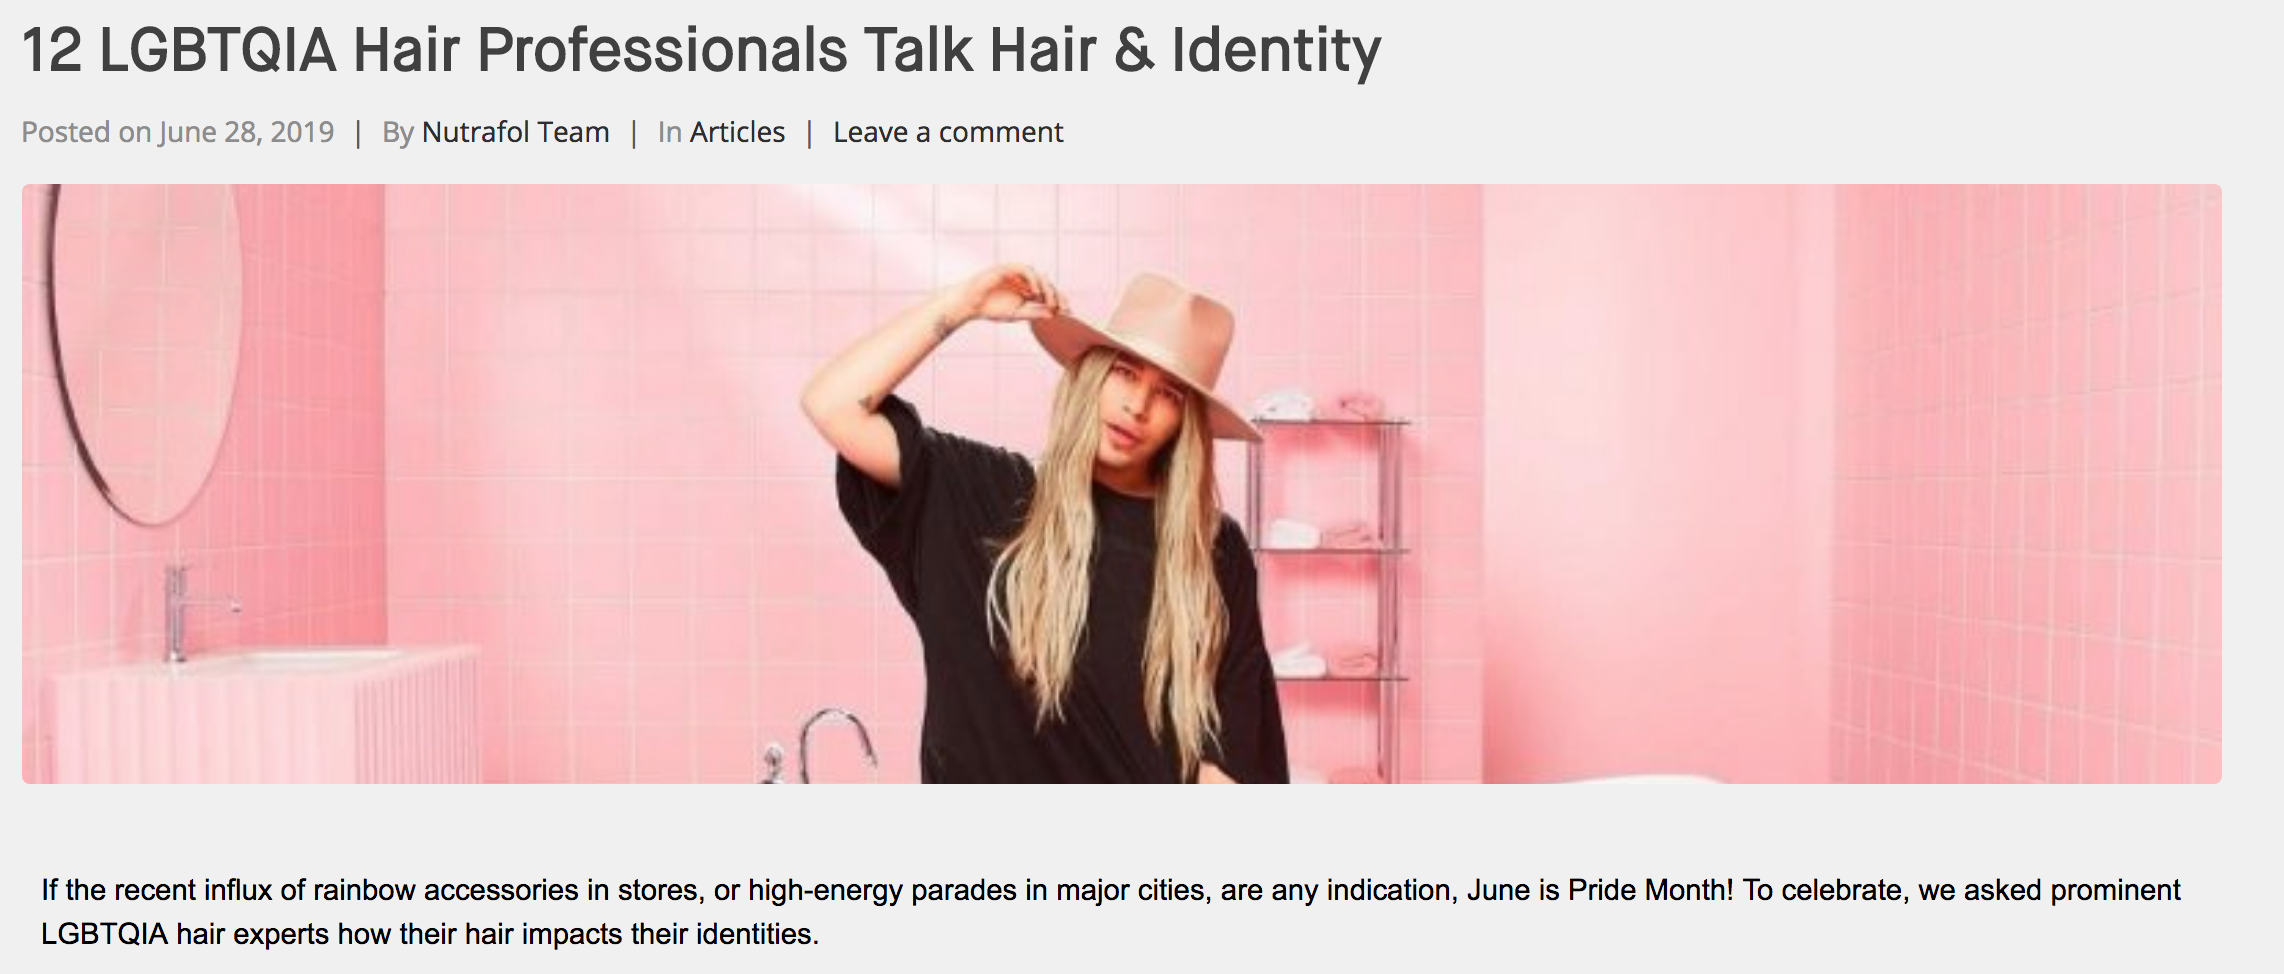 Nathan Alan, Hairstylist for Nutrafol